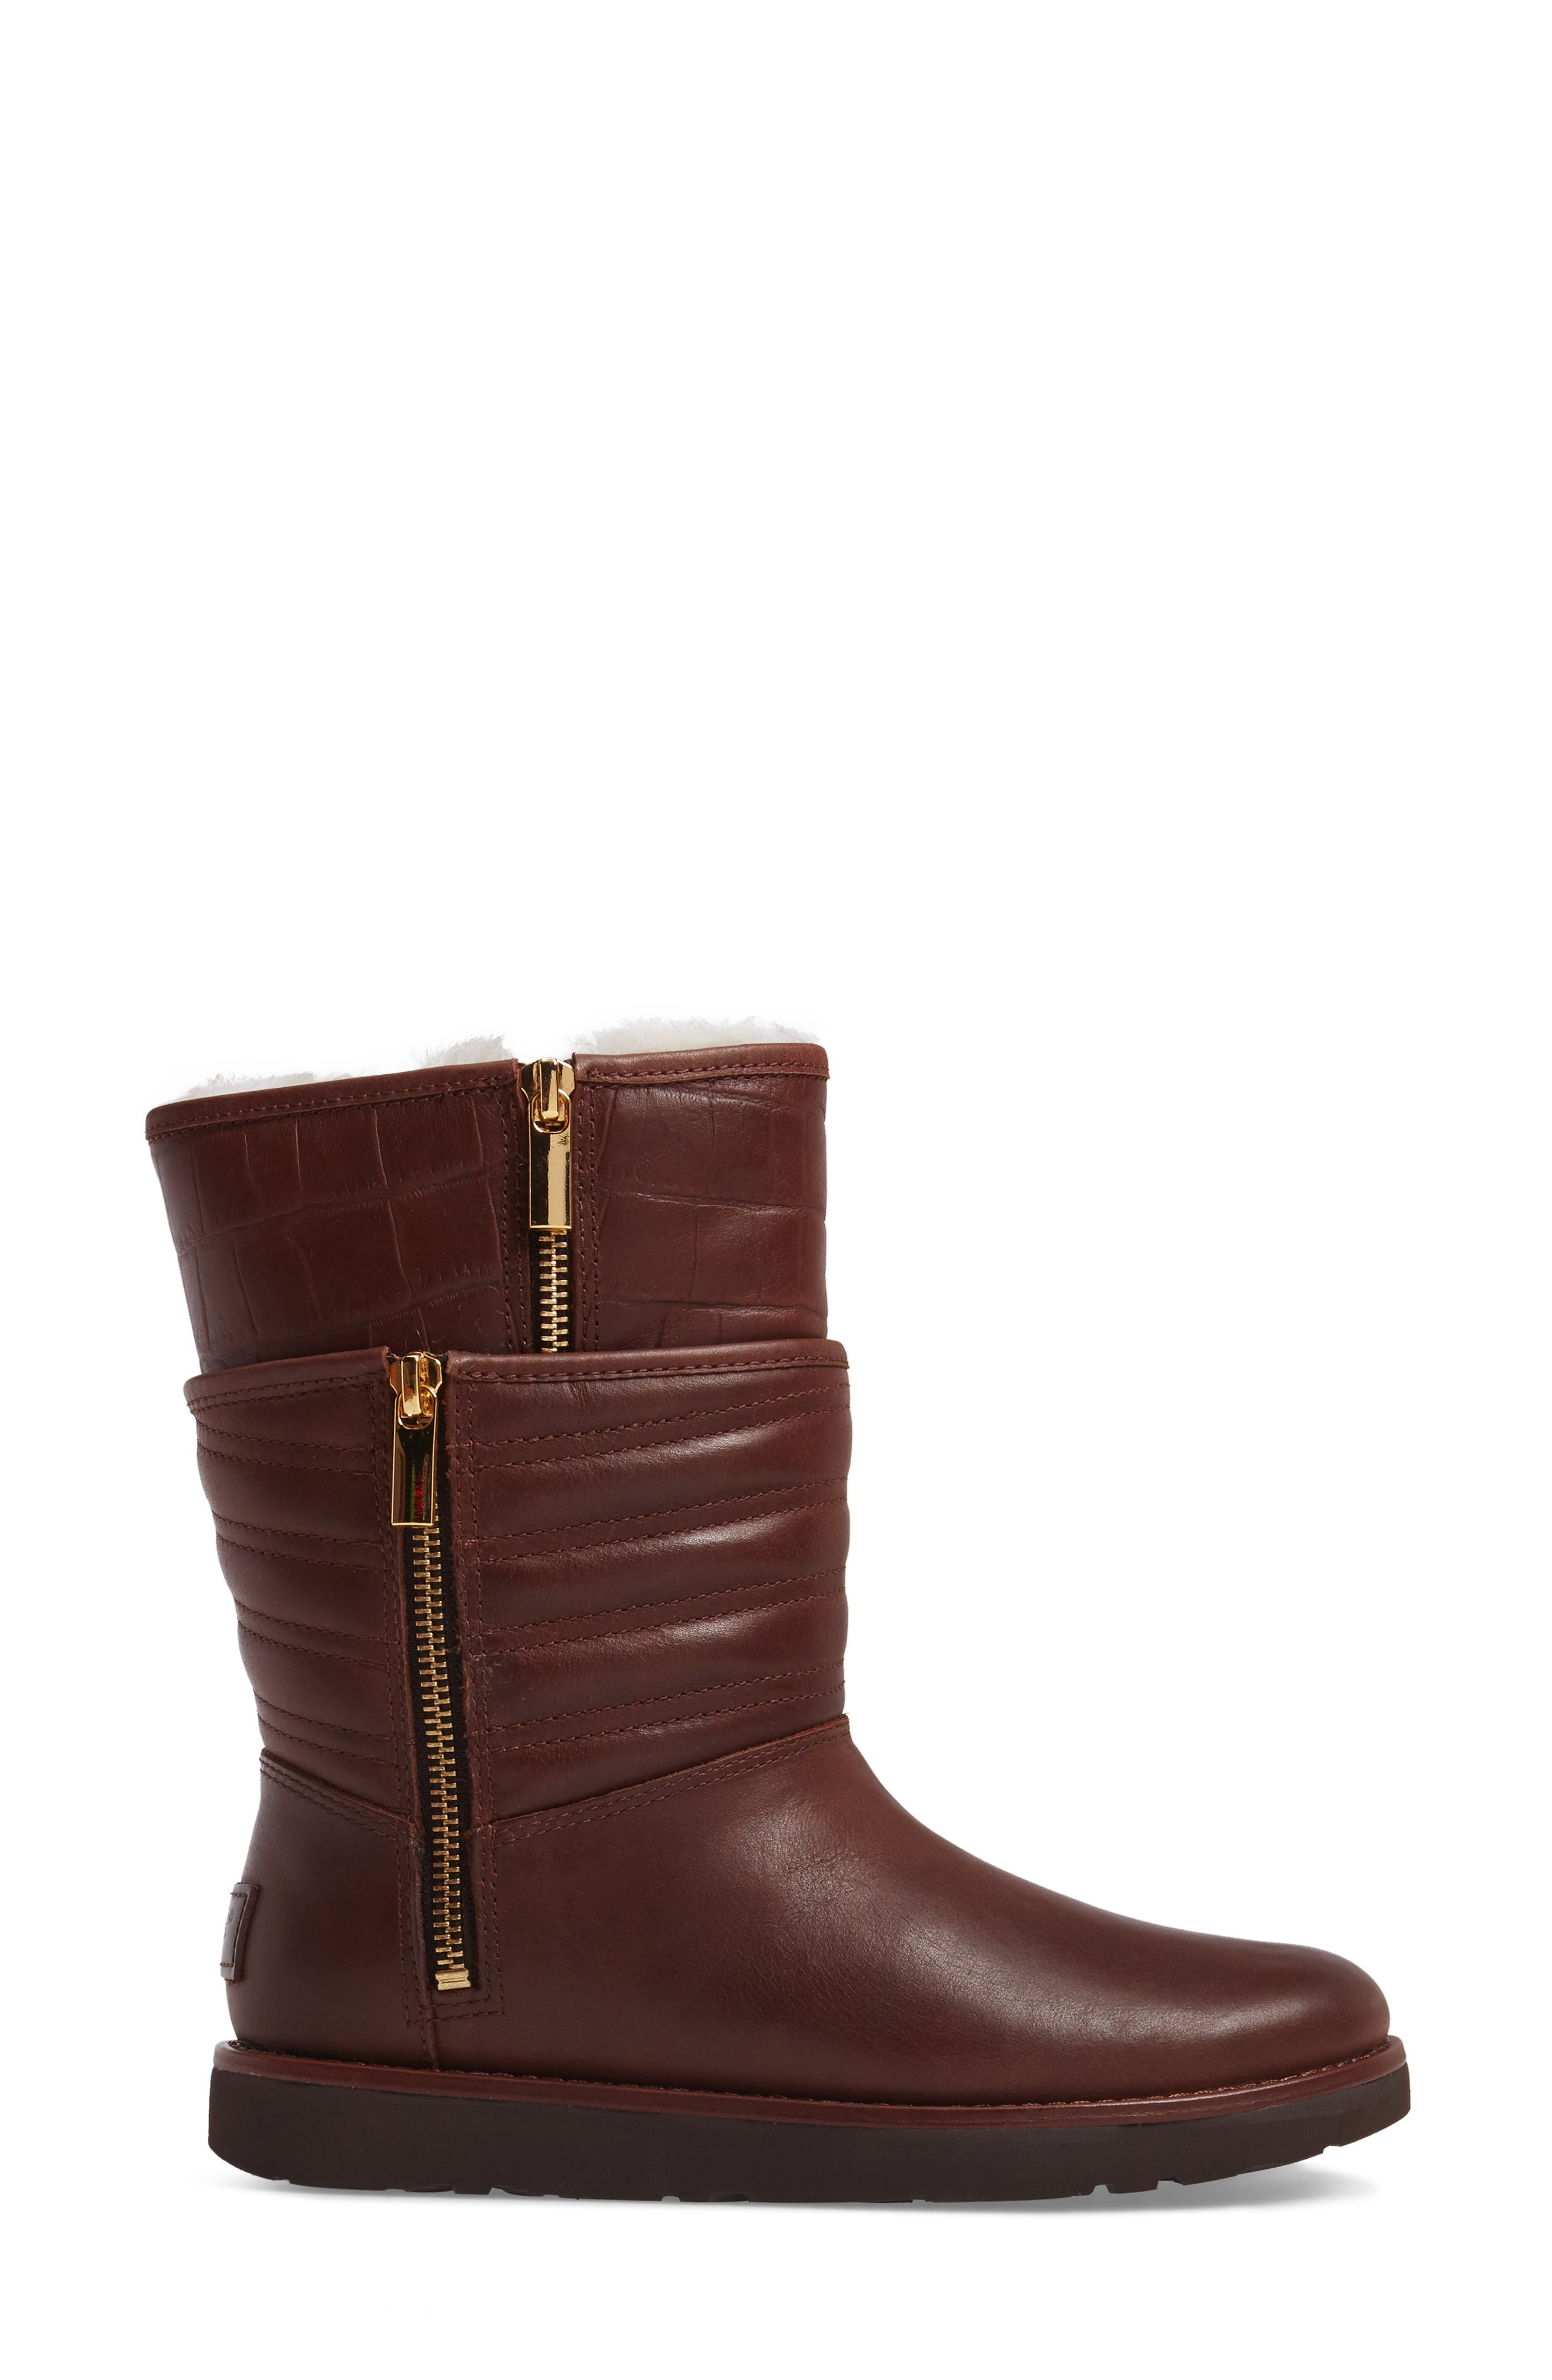 Alternate Image 3  - UGG® Aviva Genuine Shearling Lined Boot (Women)